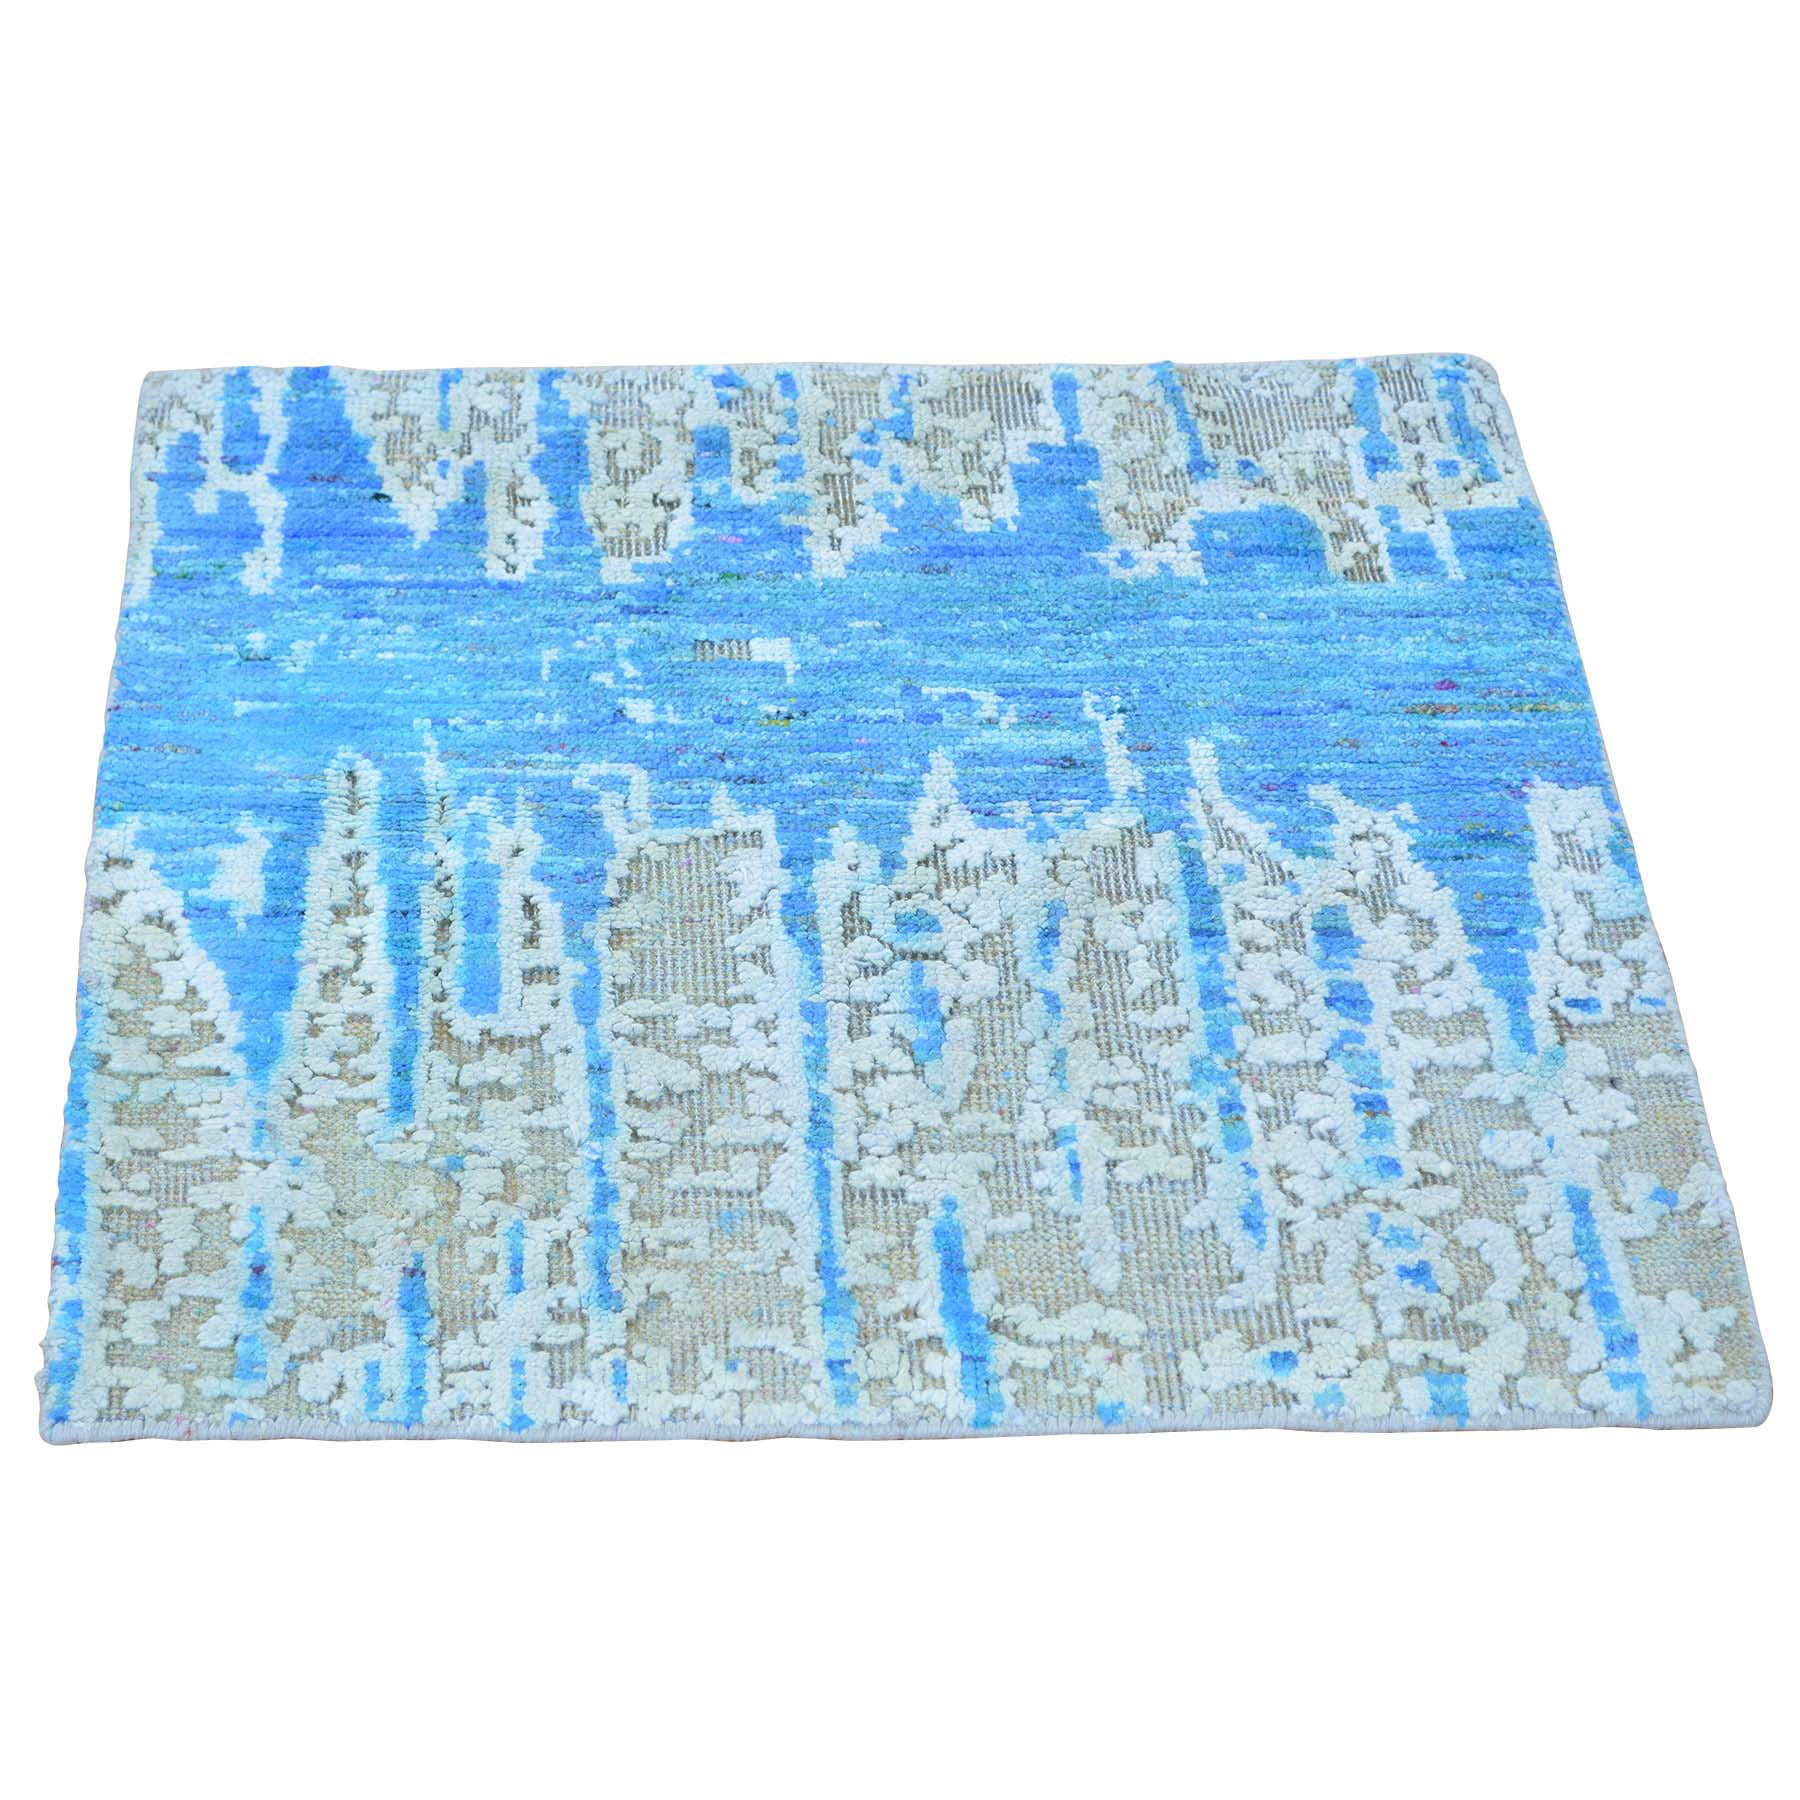 "Handmade Modern and Contemporary Square Rug > Design# SH24316 > Size: 2'-0"" x 2'-0"" [ONLINE ONLY]"